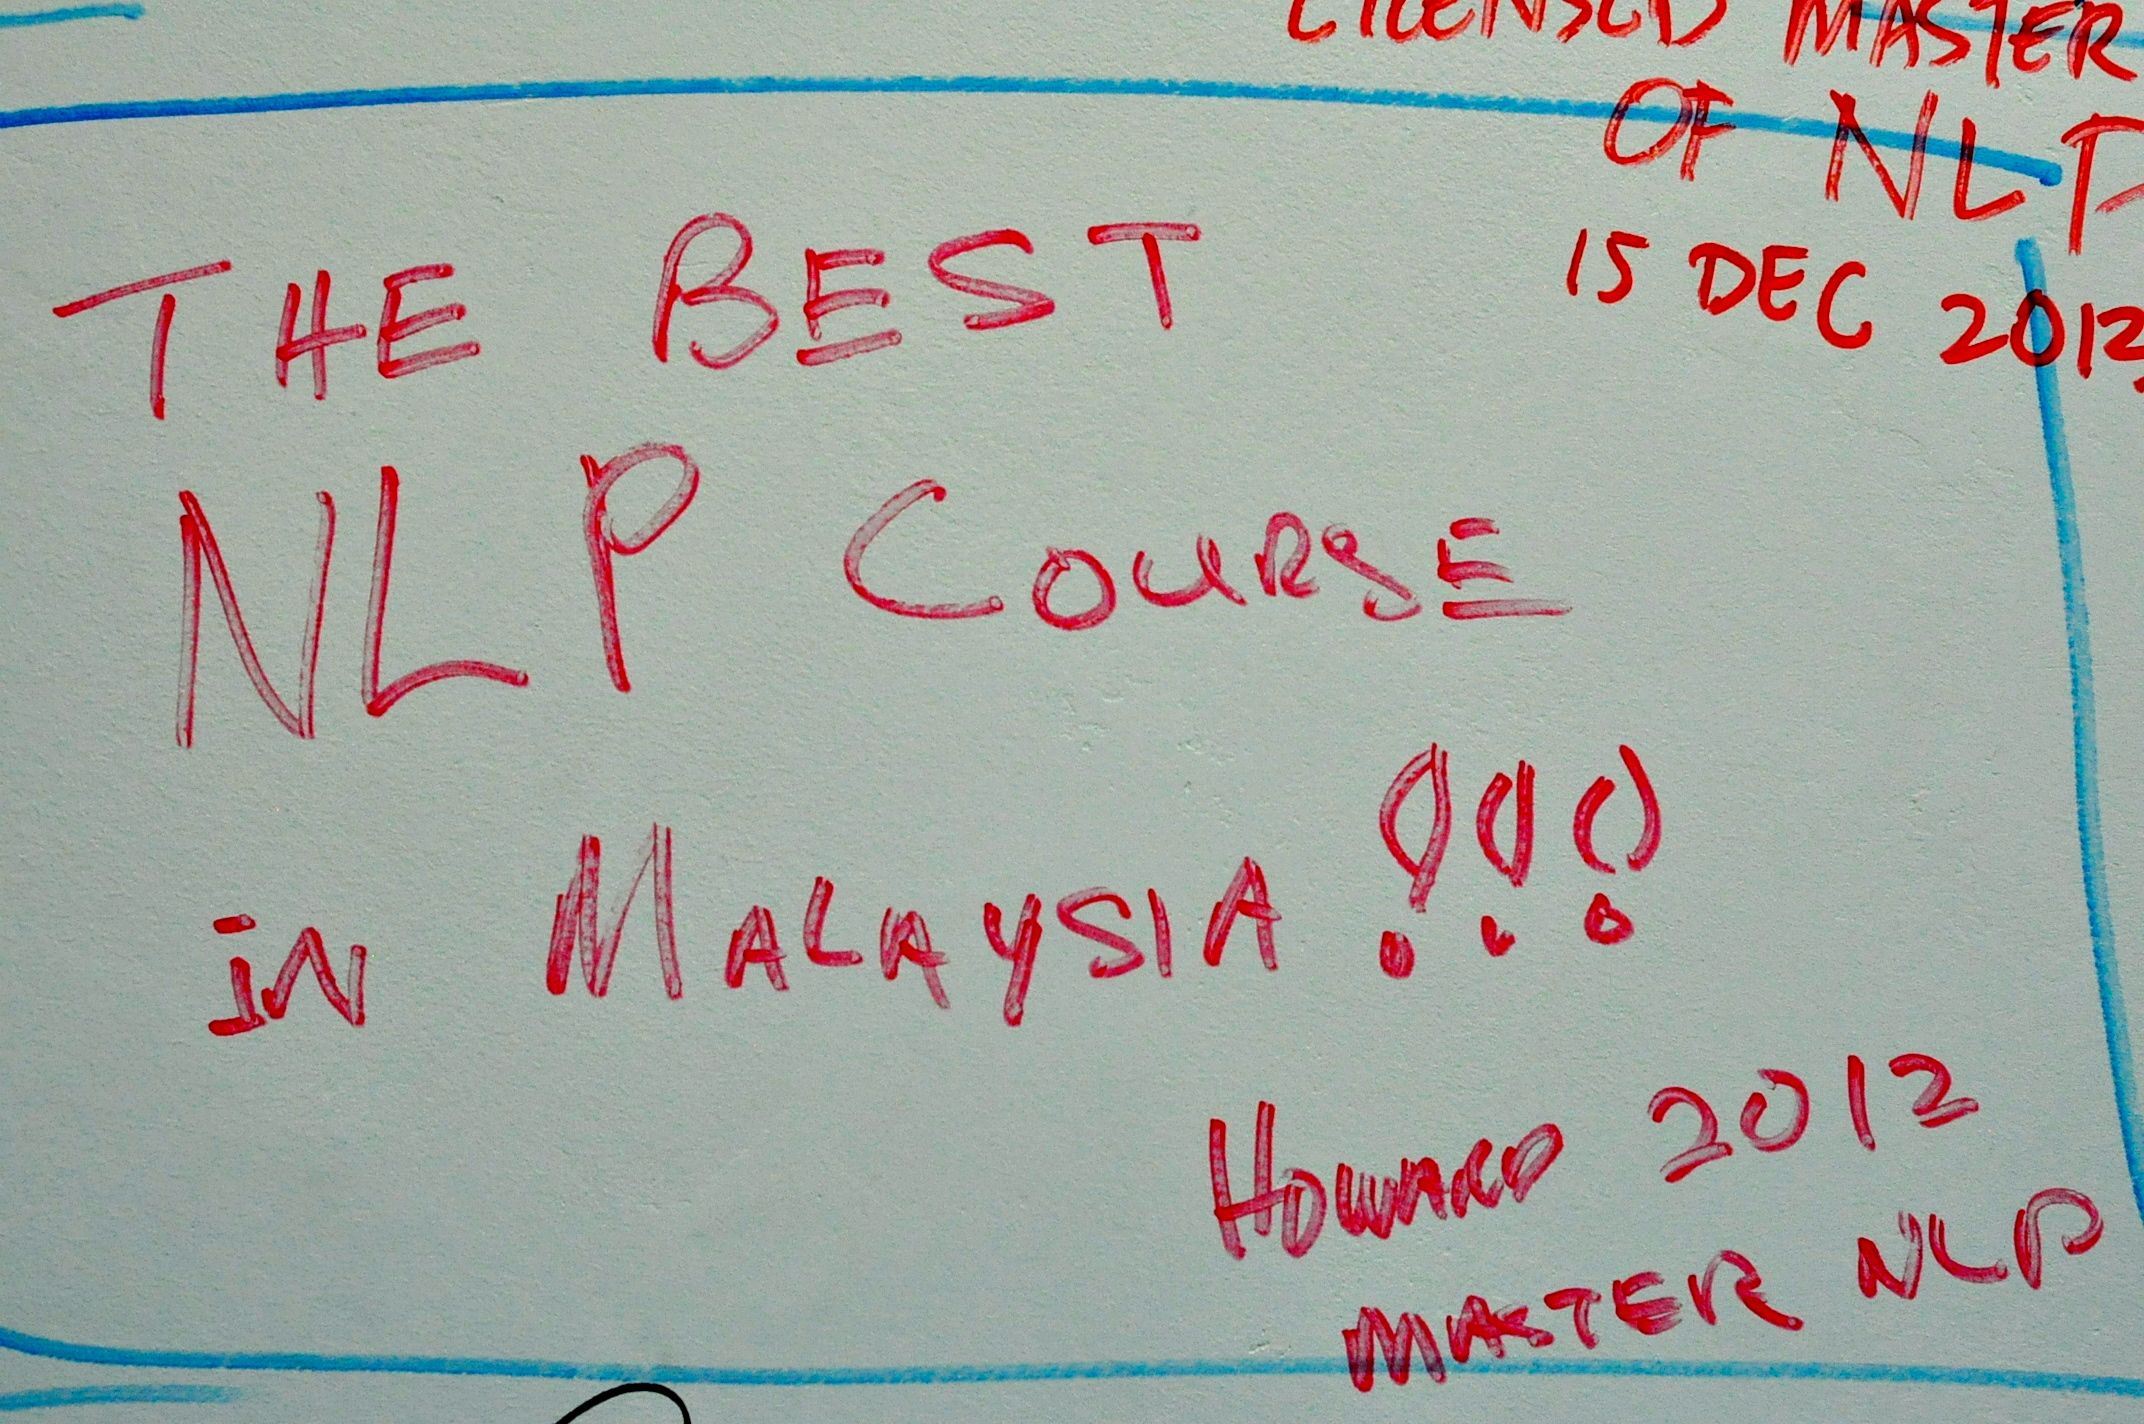 The Best NLP Course in Malaysia Thank you Howard